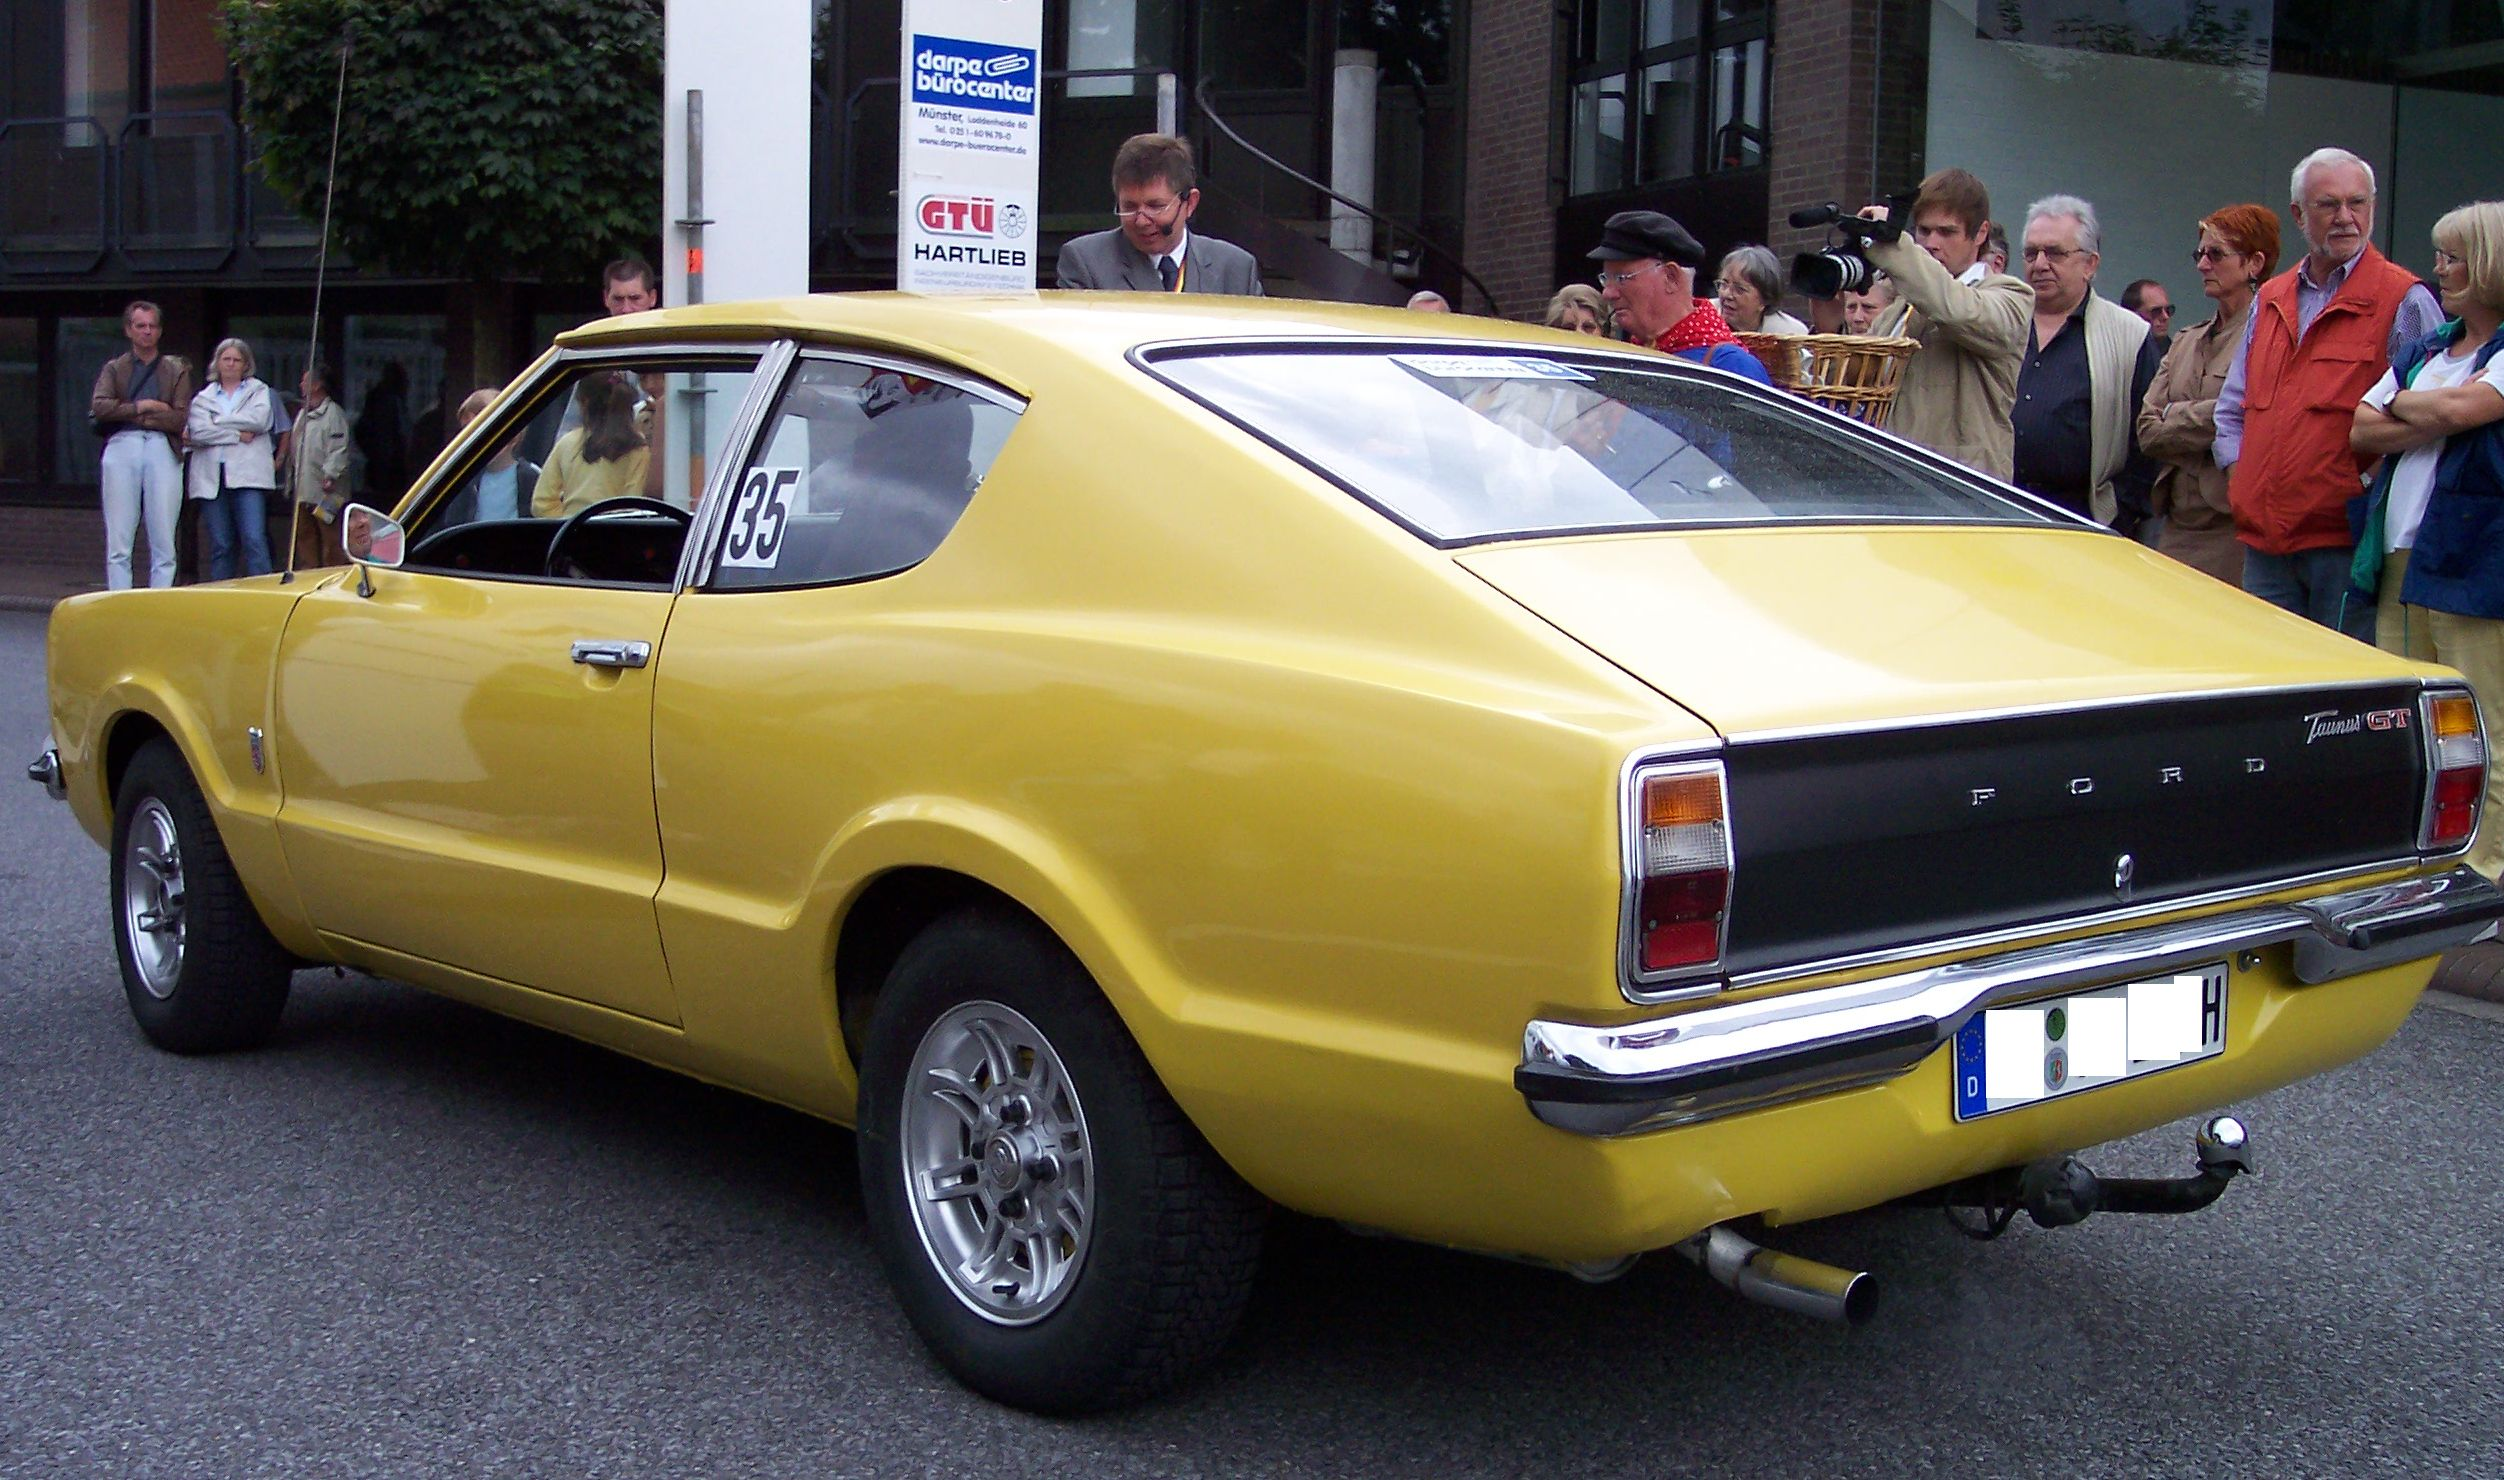 File:Ford Taunus Coupe 2.0 1972 yellow hl2.jpg - Wikimedia ...